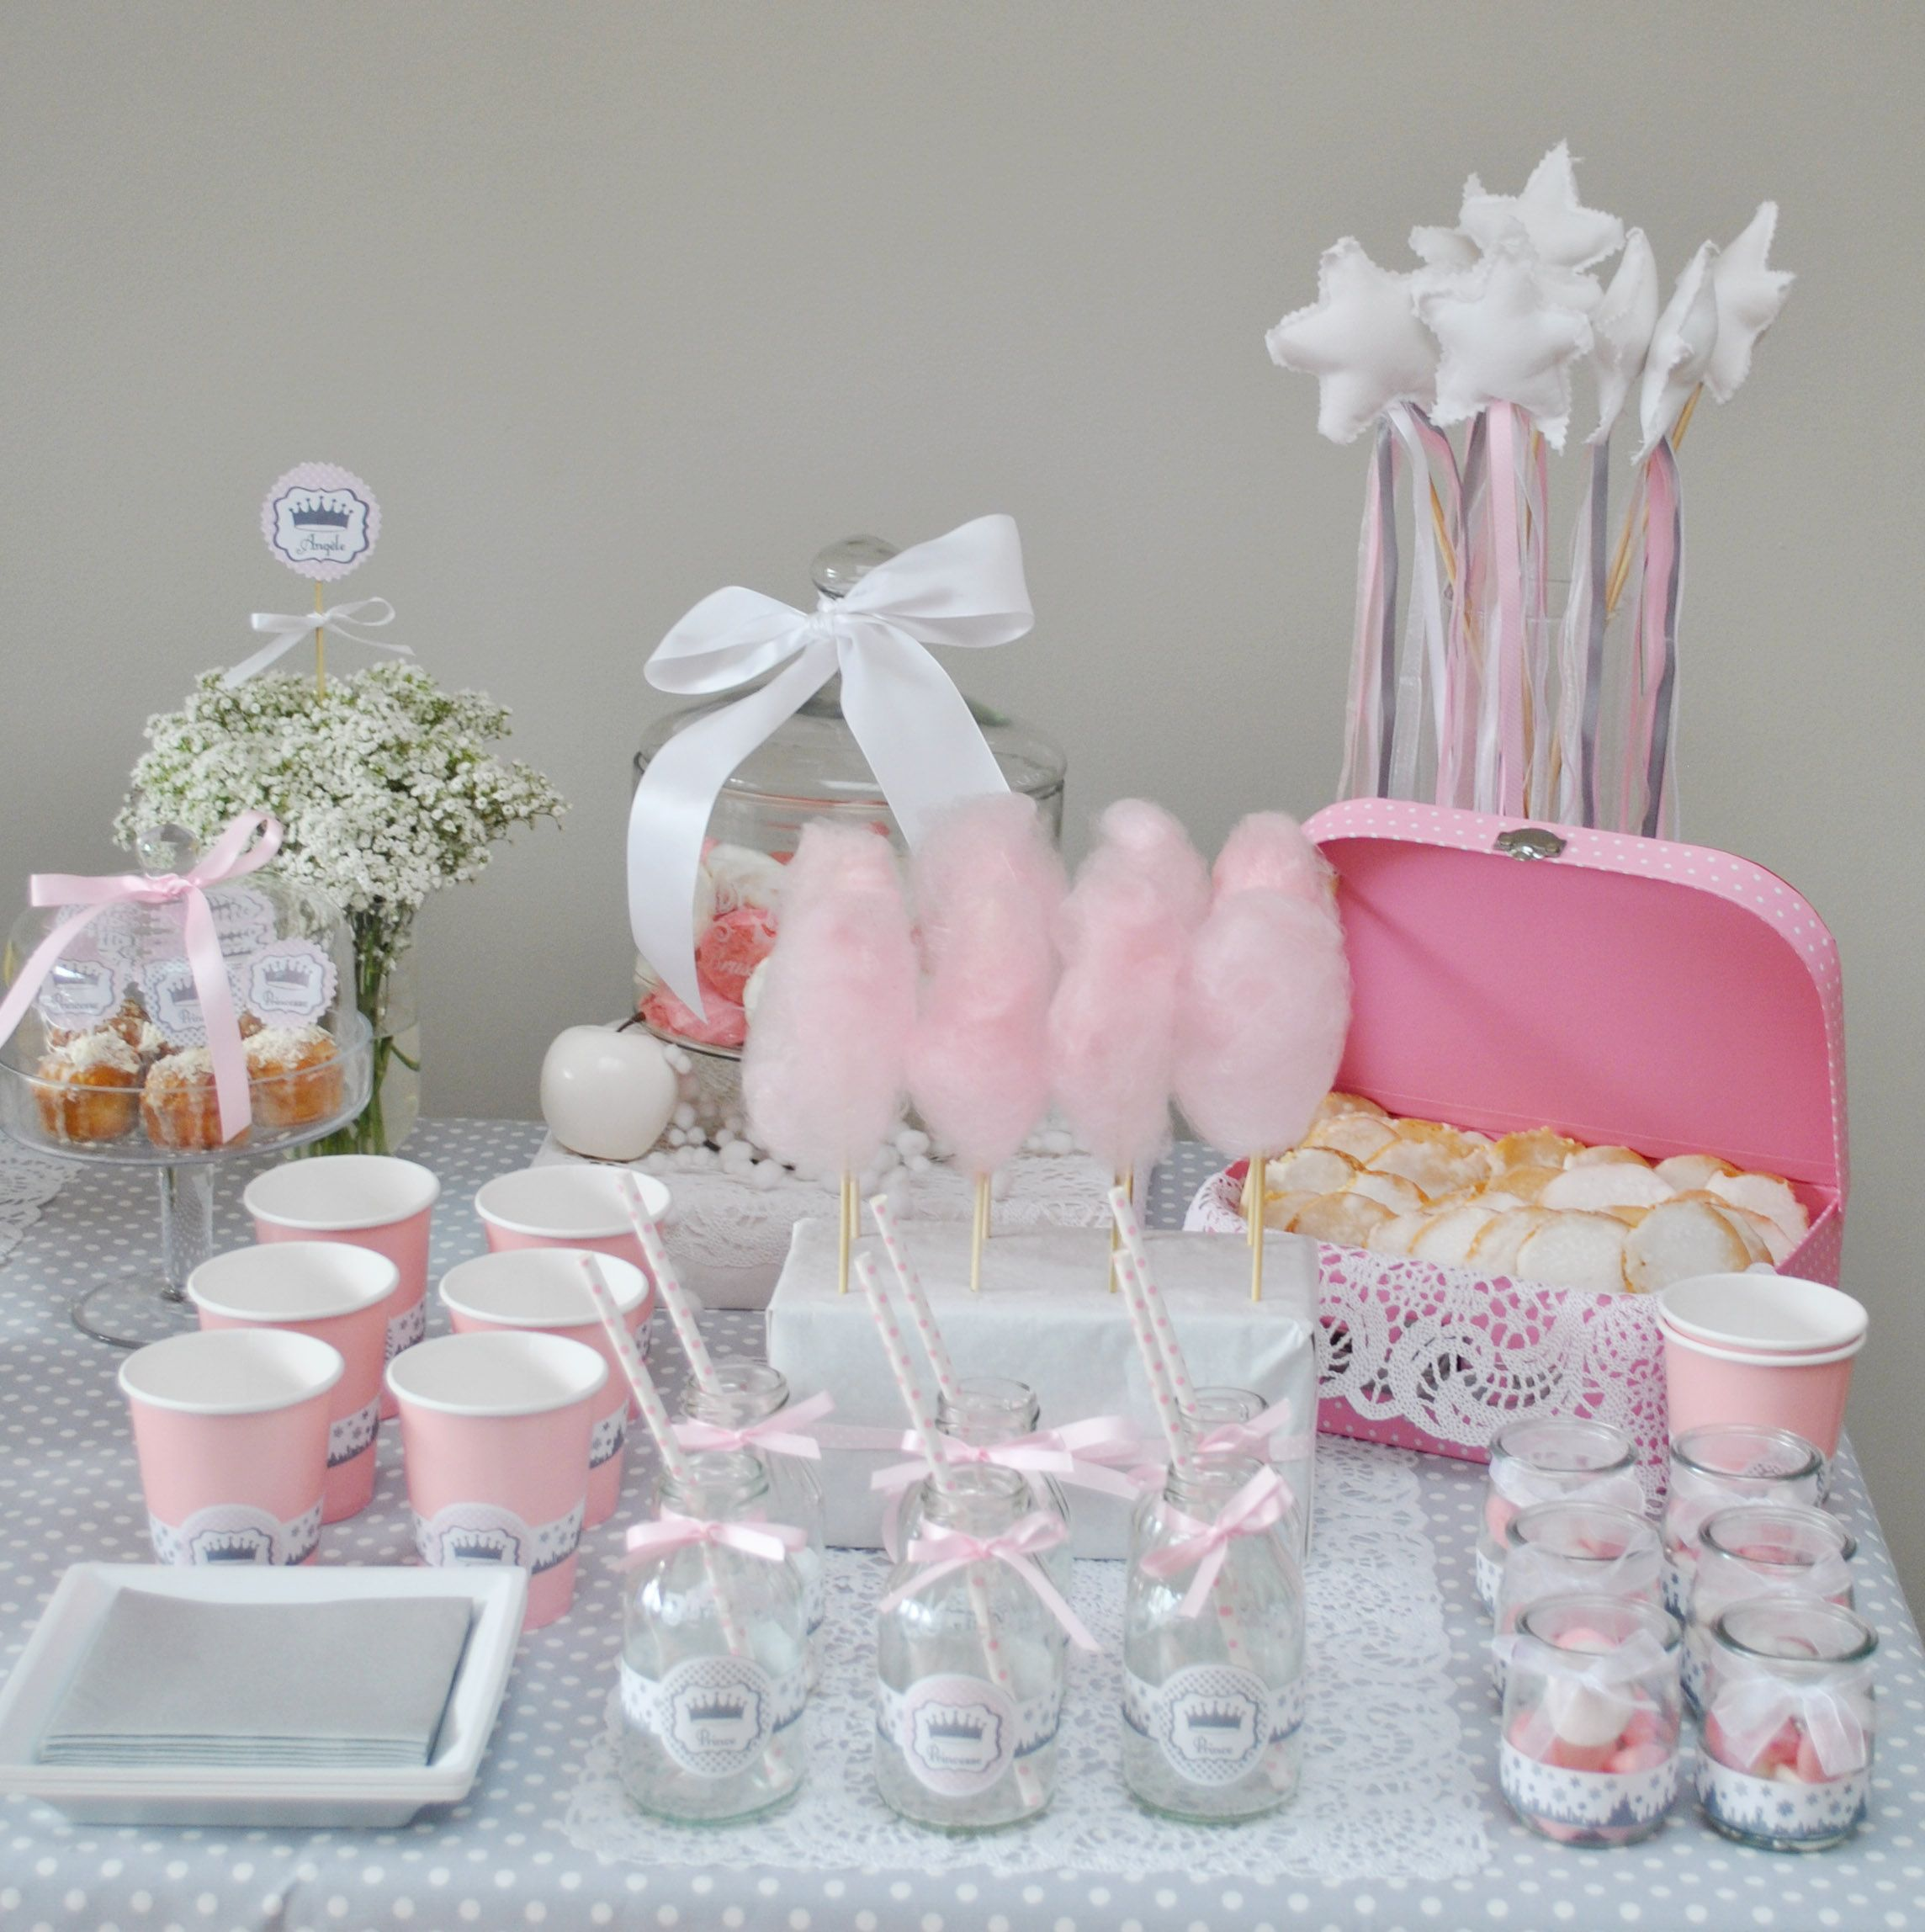 sweet table baby shower mubie pinterest deco anniversaire anniversaire et anniversaire. Black Bedroom Furniture Sets. Home Design Ideas